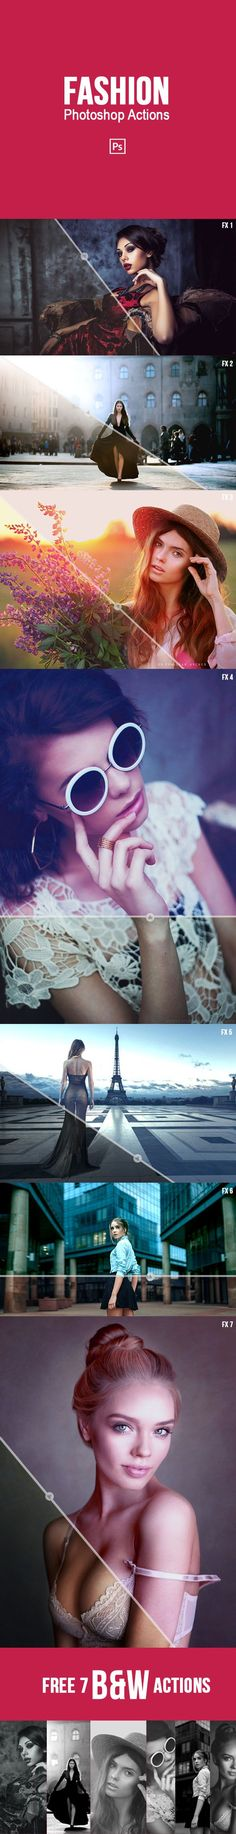 Fashion Photoshop Actions - Photo Effects Actions. Download here: http://graphicriver.net/item/fashion-photoshop-actions/16687860?s_rank=233&ref=yinkira